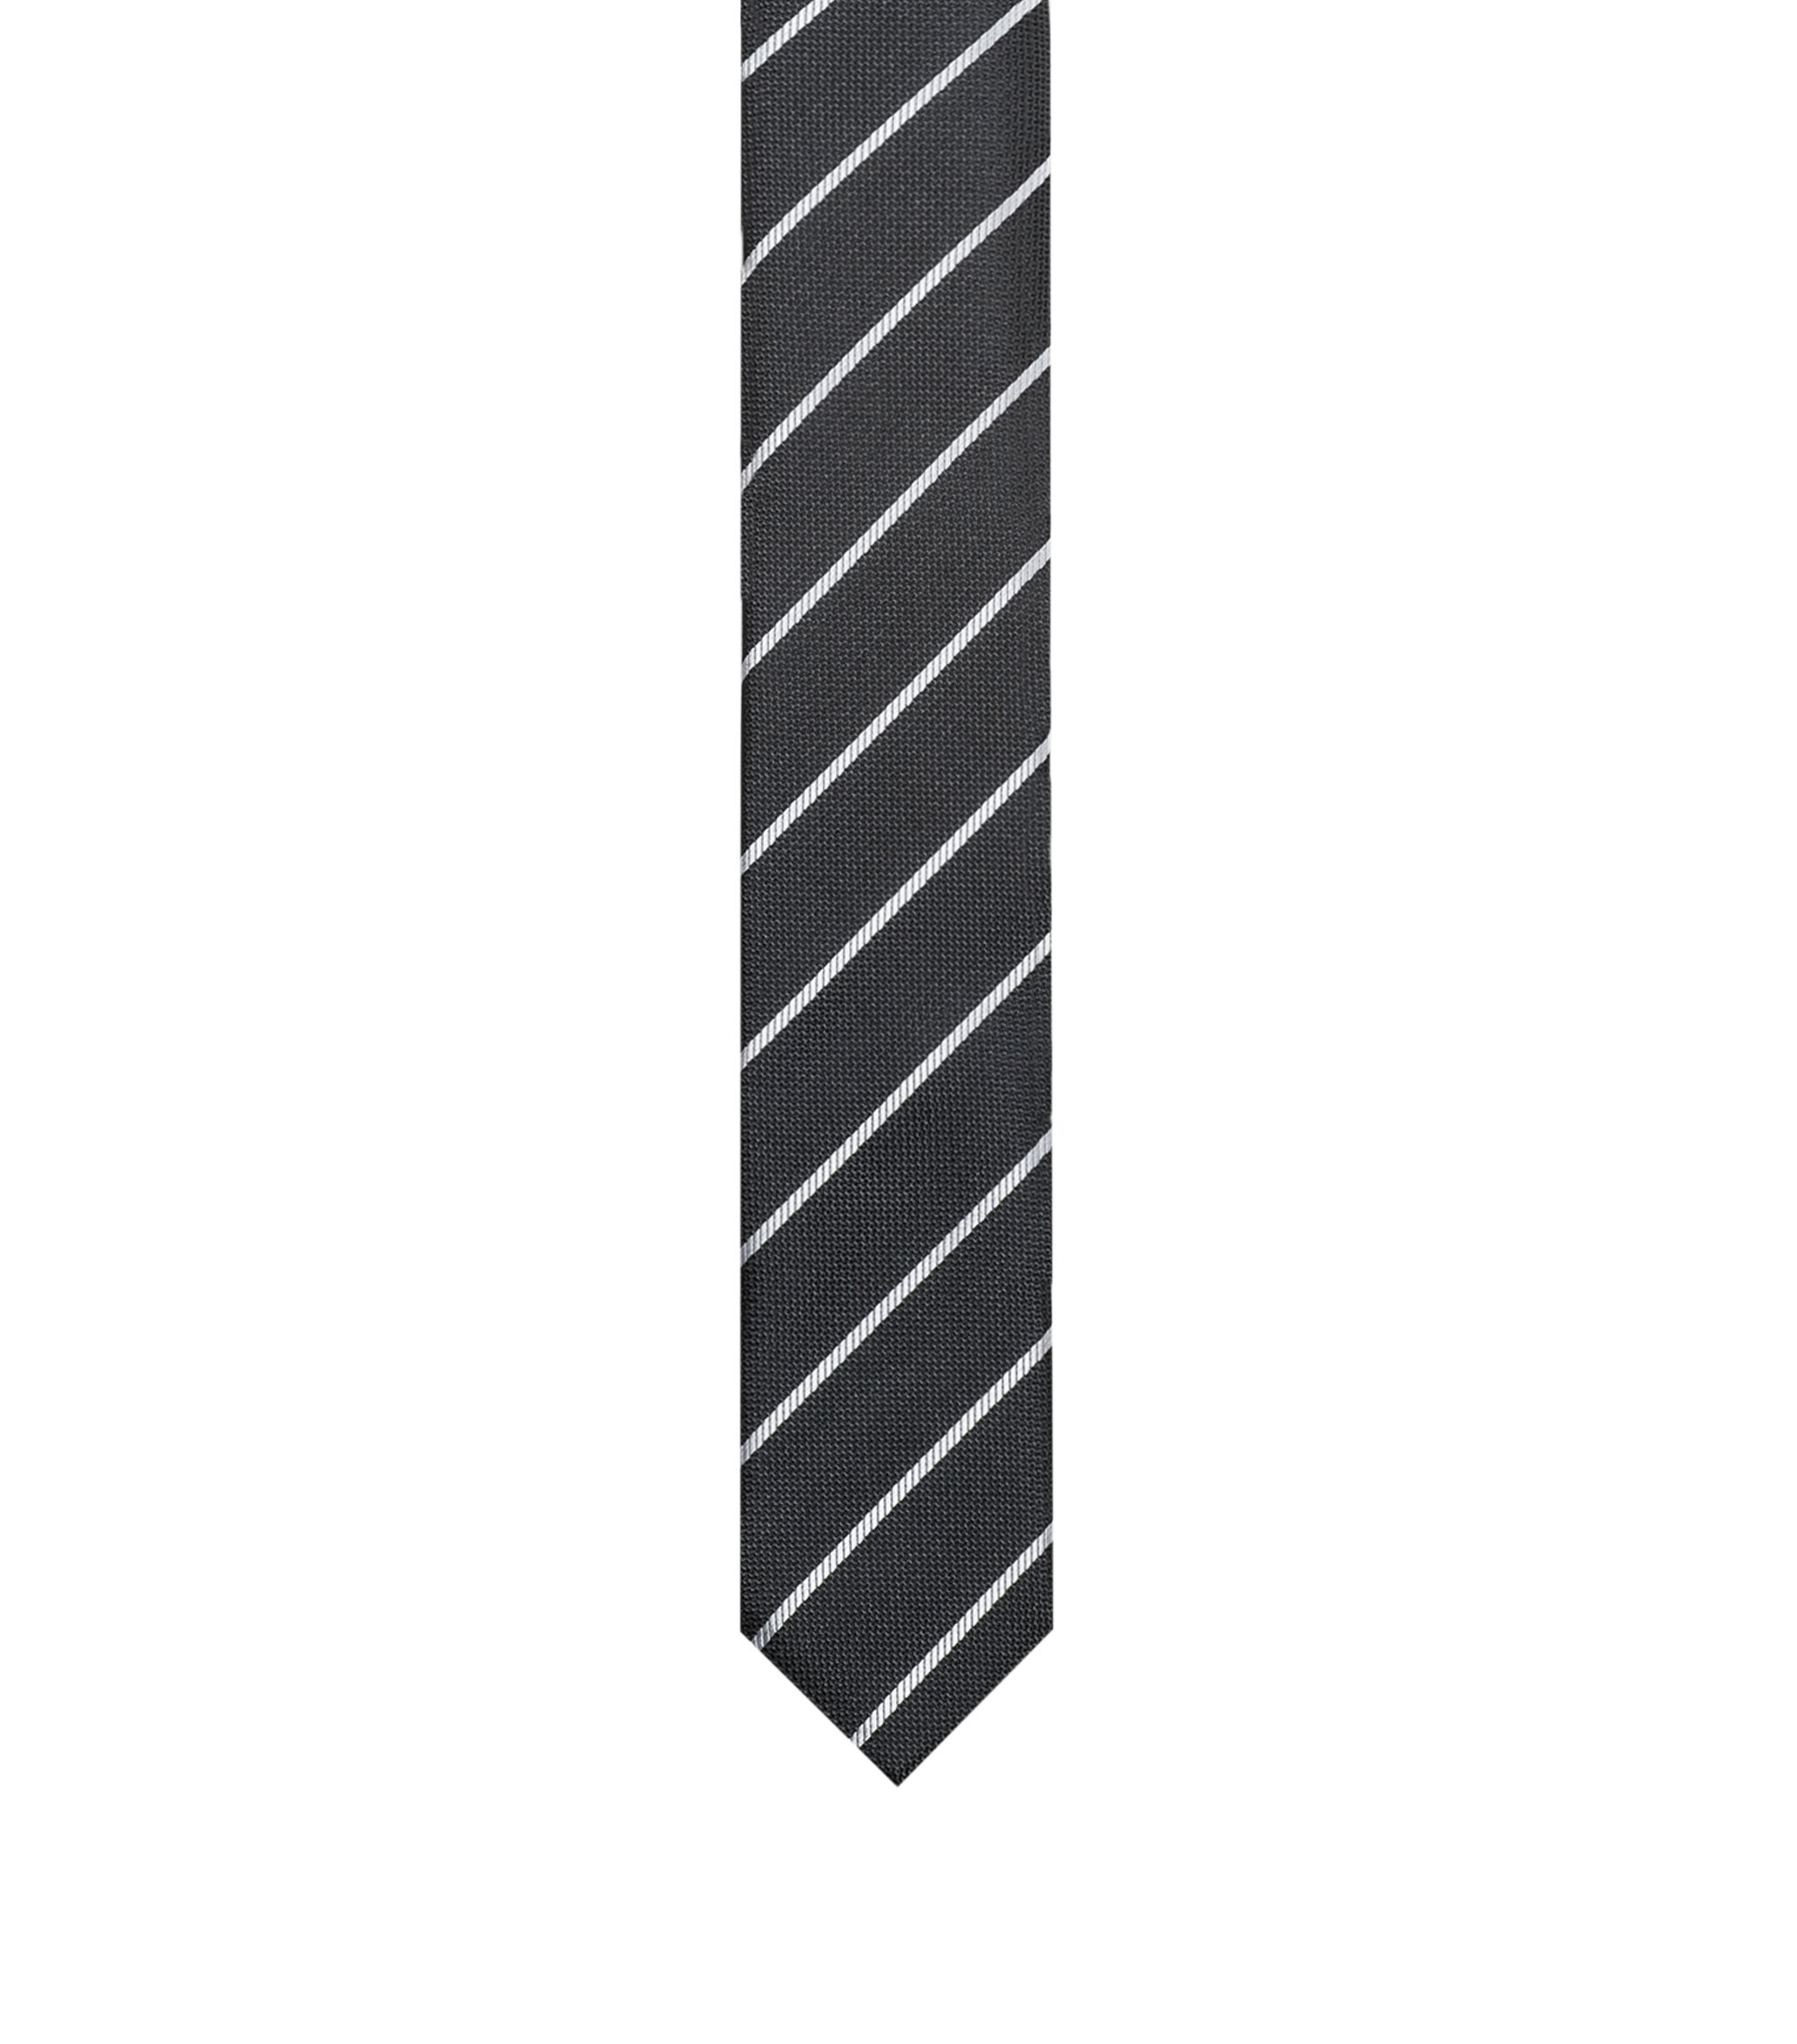 Silk jacquard tie with diagonal stripes, Black